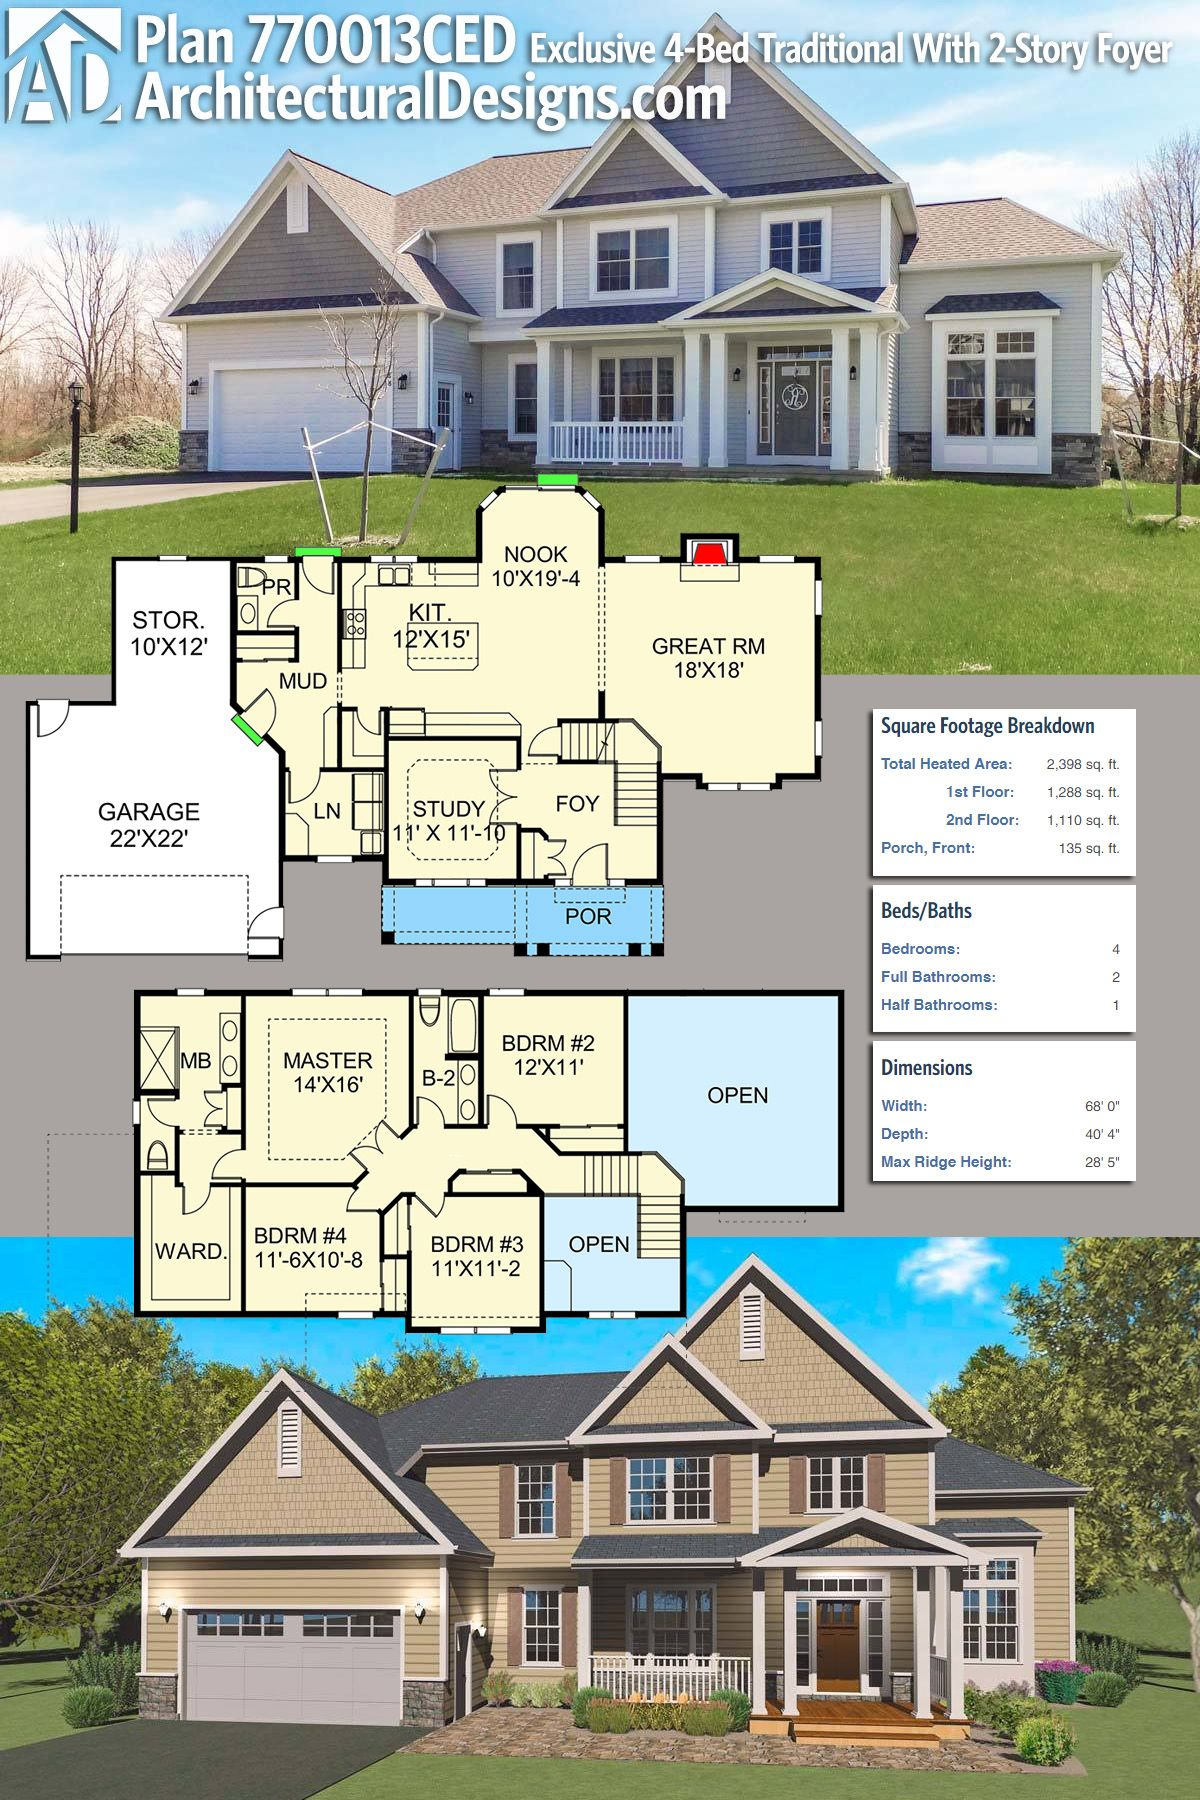 Plan 770013ced Exclusive Traditional With Two Story Foyer And Great Room Exclusive House Plan House Plans House Blueprints